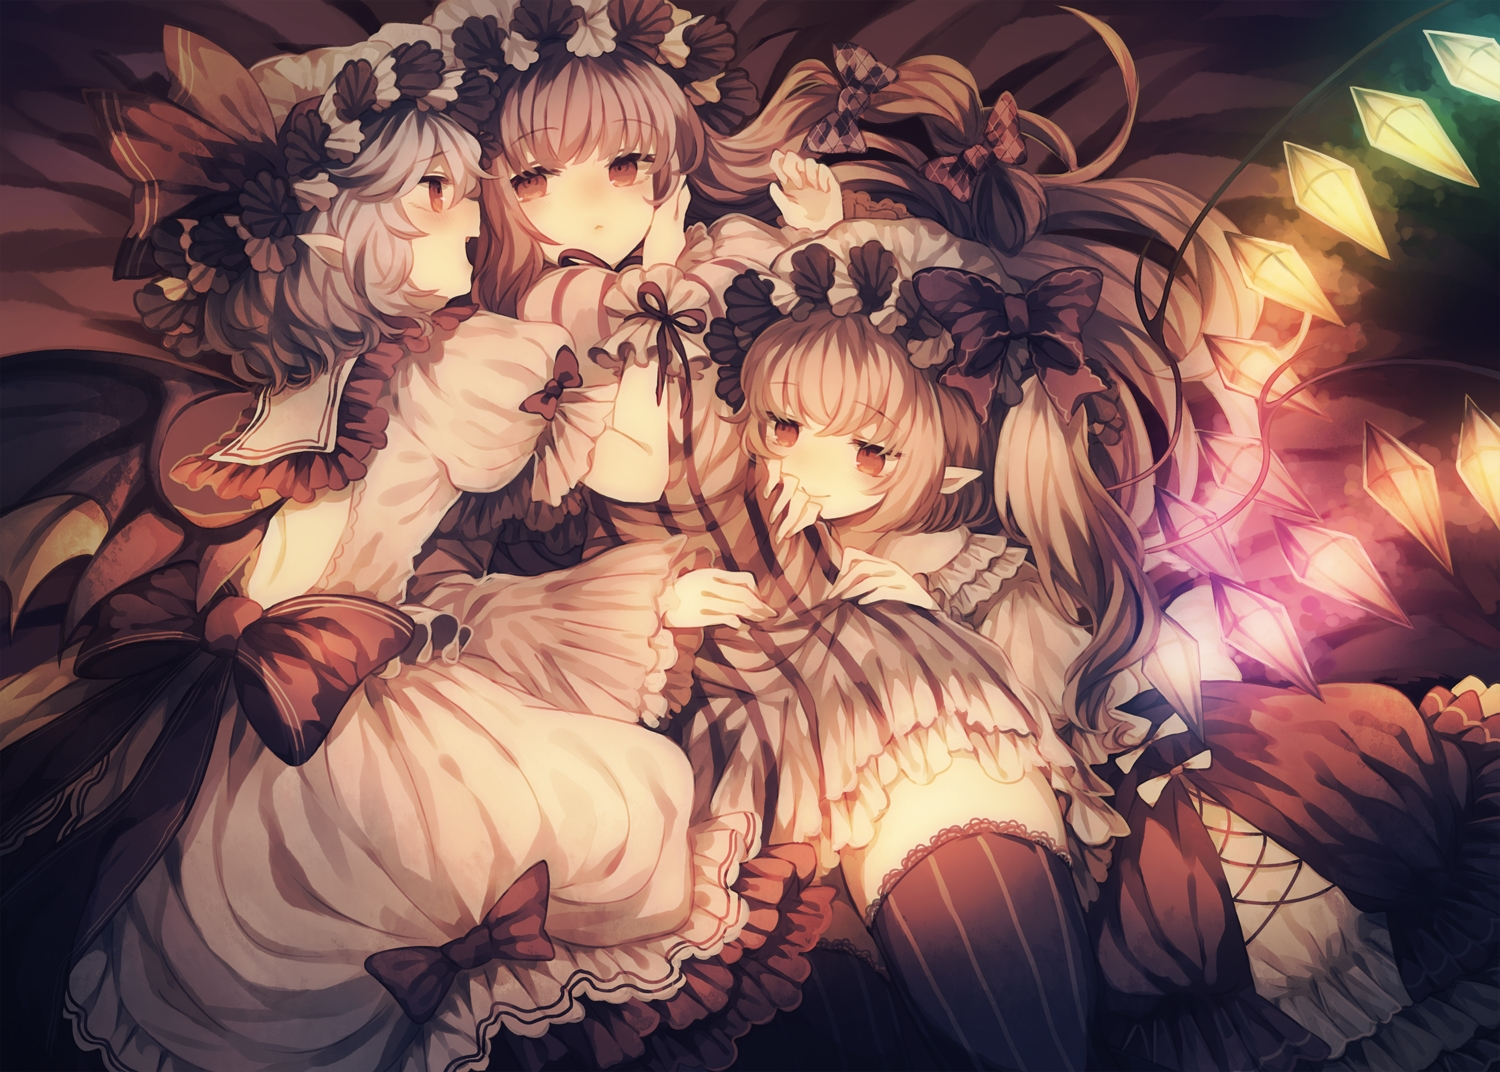 bed blonde_hair bow dress flandre_scarlet gray_hair hat long_hair patchouli_knowledge pointed_ears ponytail red_eyes remilia_scarlet short_hair shoujo_ai thighhighs touhou twintails vampire wings wiriam07